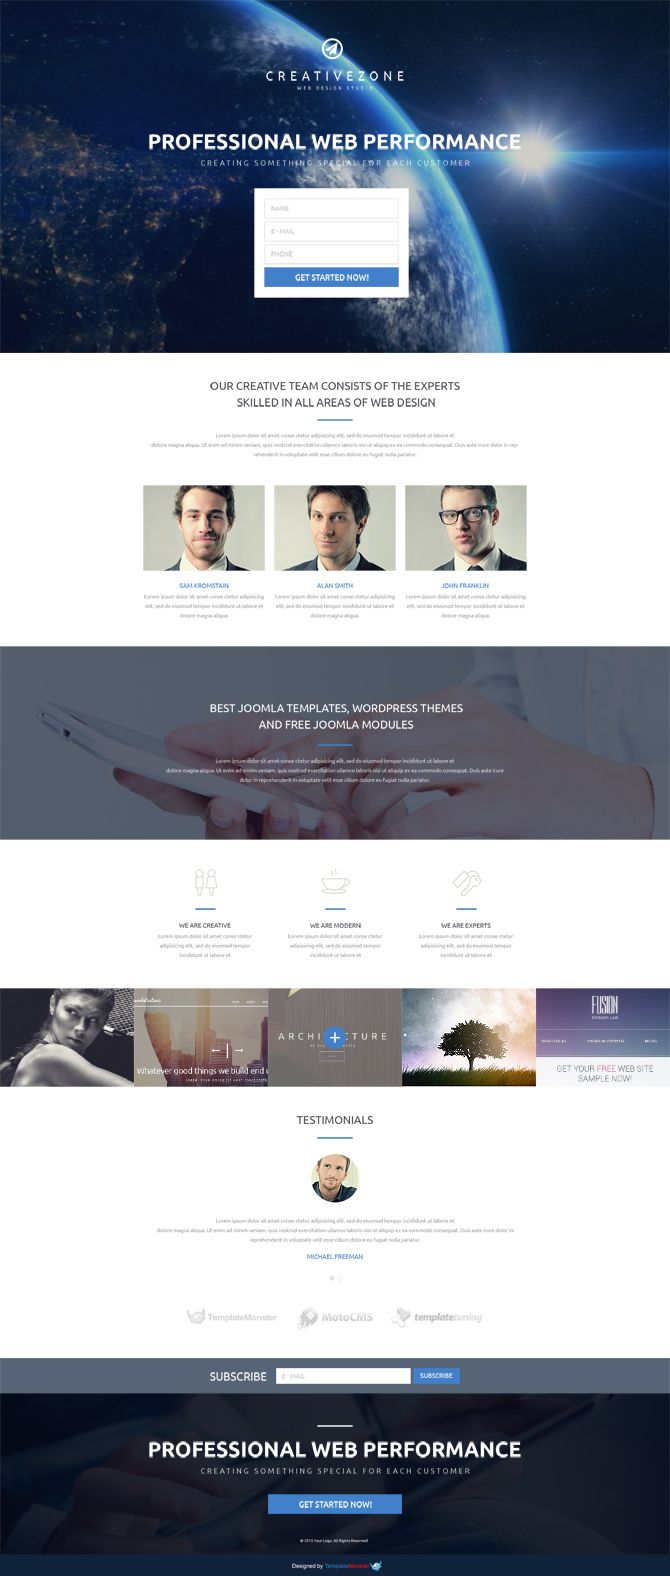 Design Studio Free Landing Page Template To Gain More Site Viewers